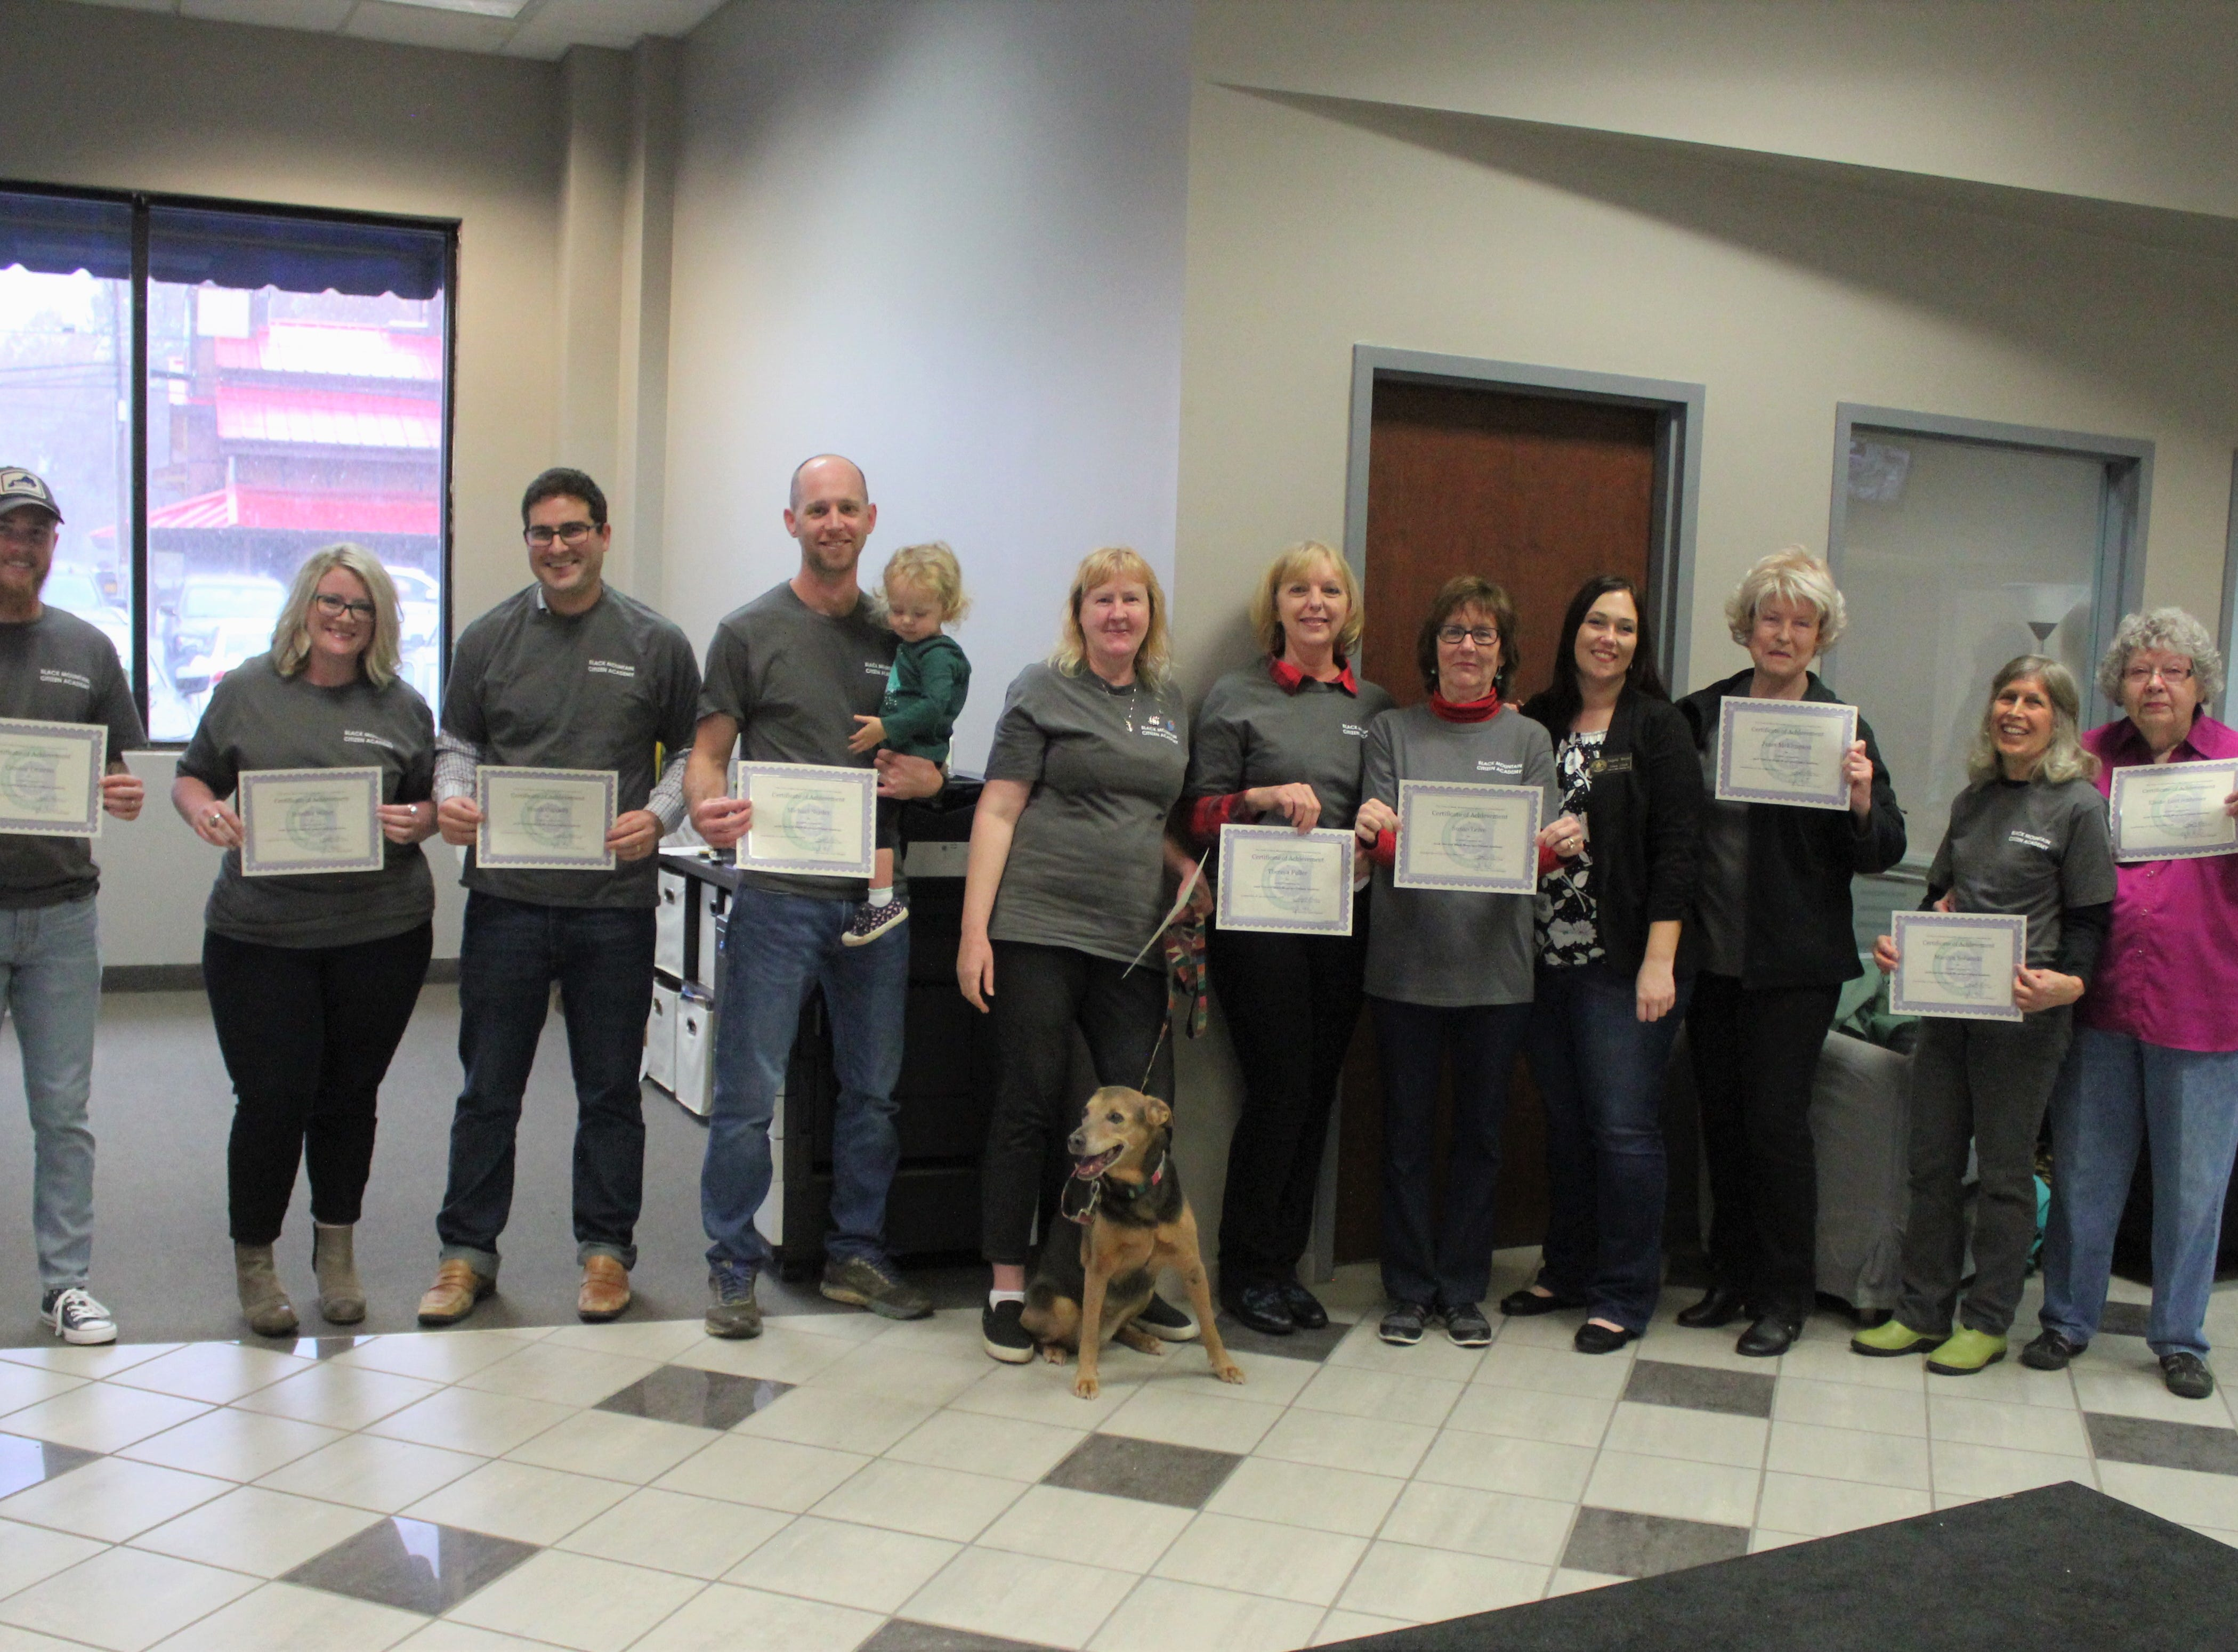 Town recognizes graduates of first Citizens Academy